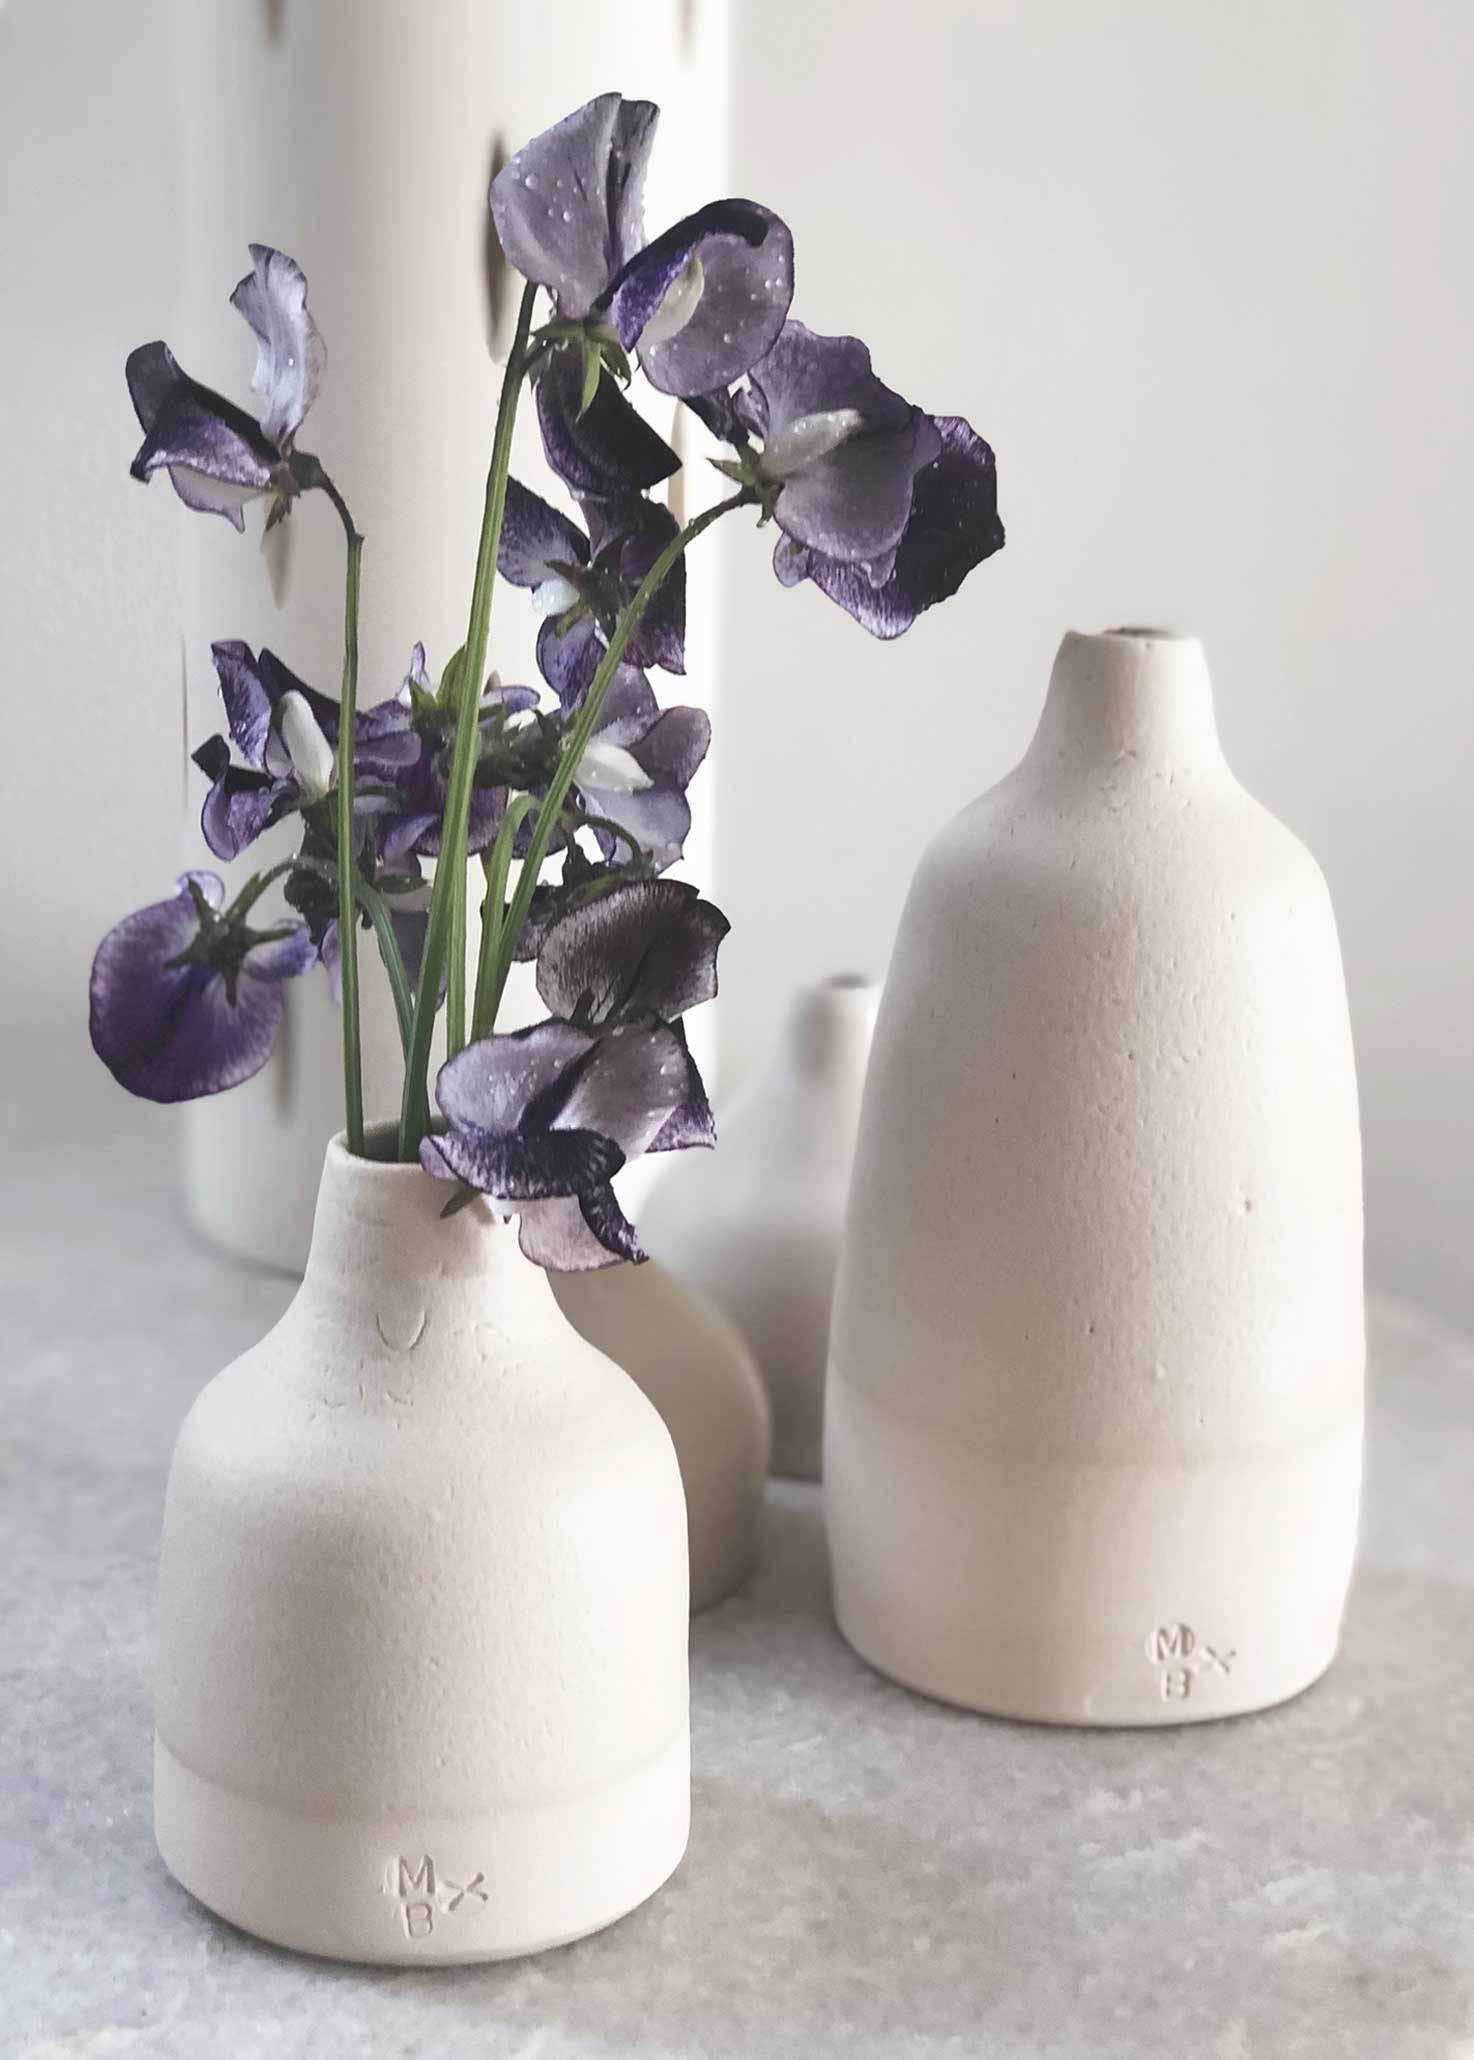 Vases by Gill Marles